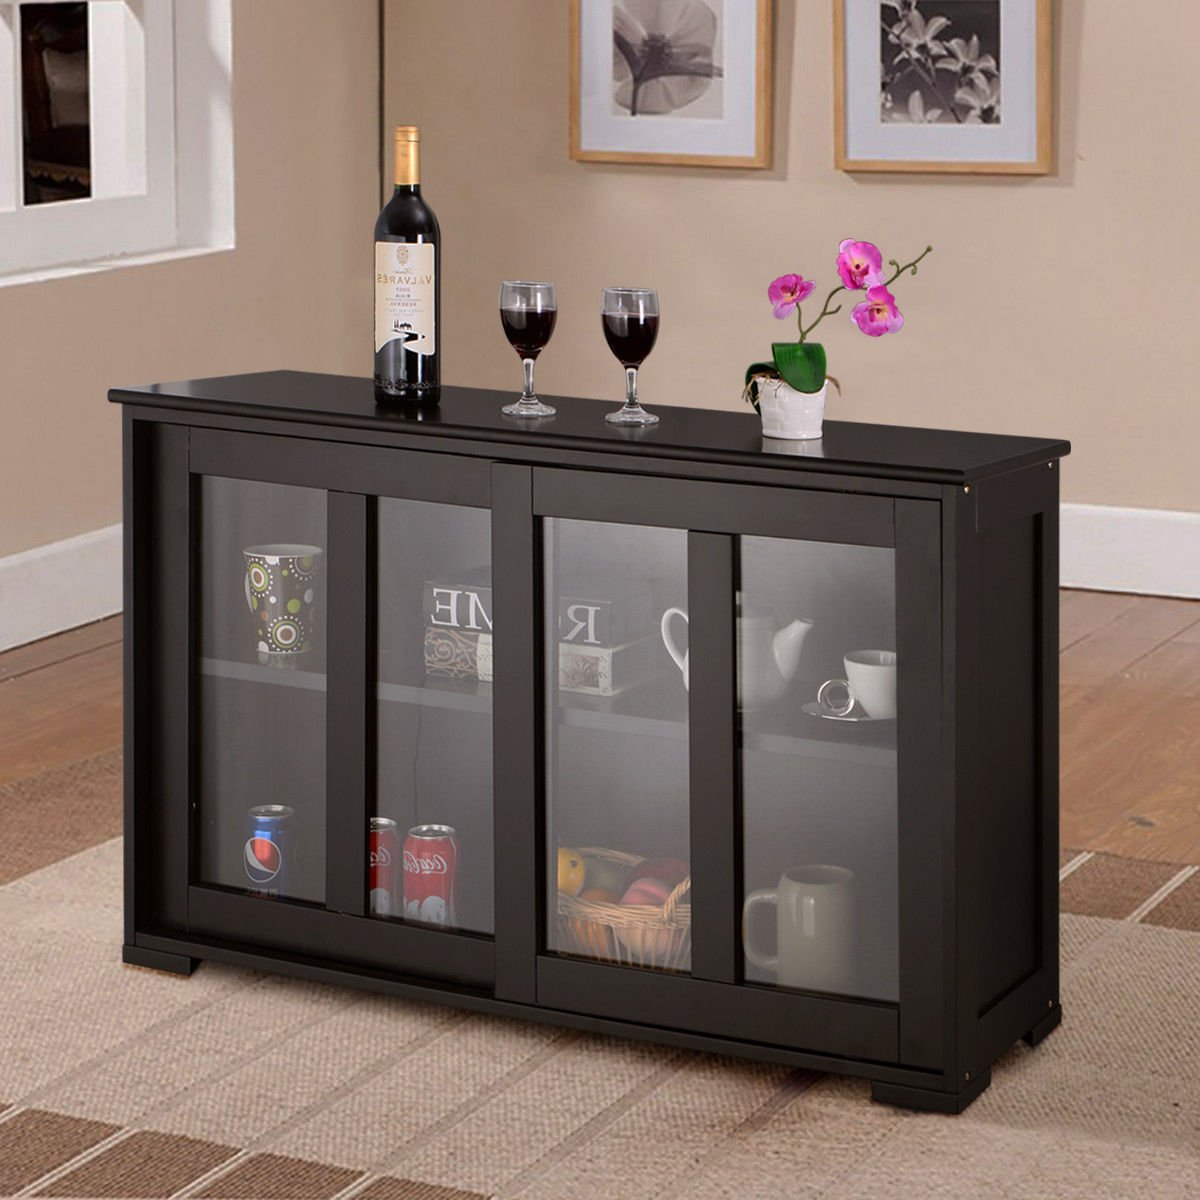 Sideboard Buffet Cupboard, Glass Sliding Door, Storage Cabinet Pantry, Ideal for Kitchen or Dining Room, Contemporary Style with Clean Lines, MDF and Tempered Glass, Black + Expert Guide